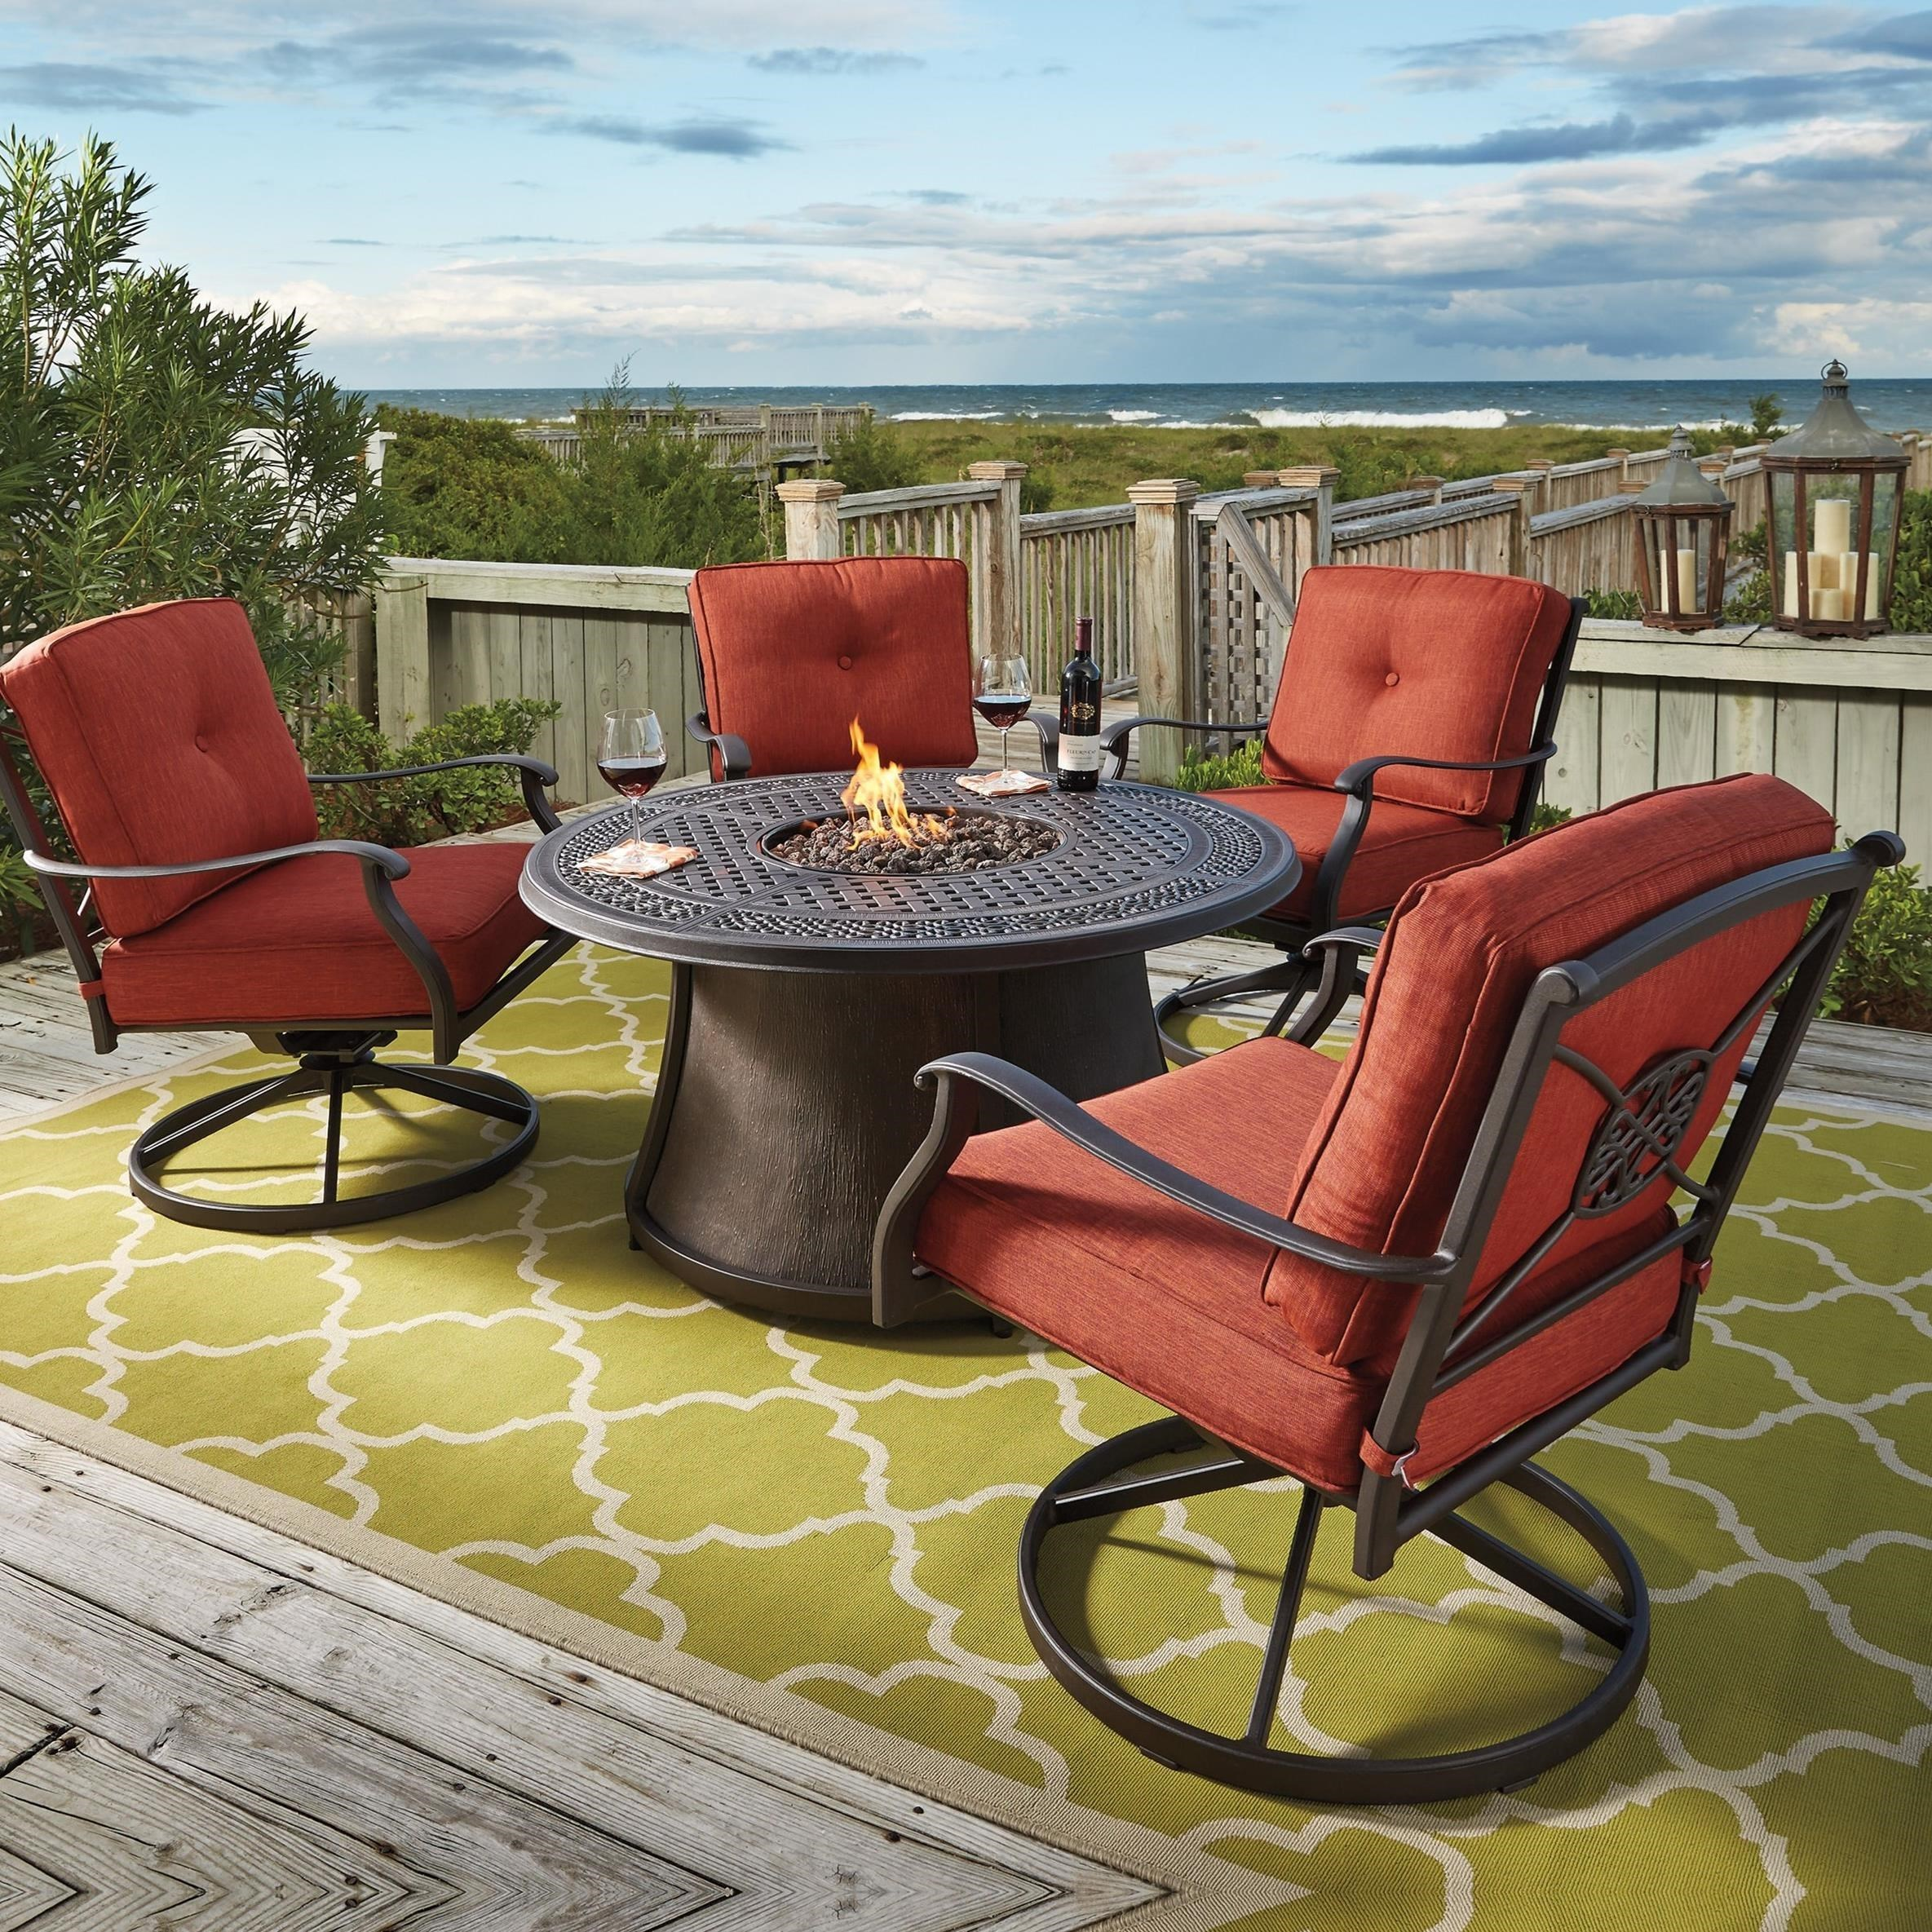 Signature Design By Ashley Burnella 5 Piece Outdoor Fire Pit Set   John V  Schultz Furniture   Outdoor Conversation Sets/Outdoor Chat Sets